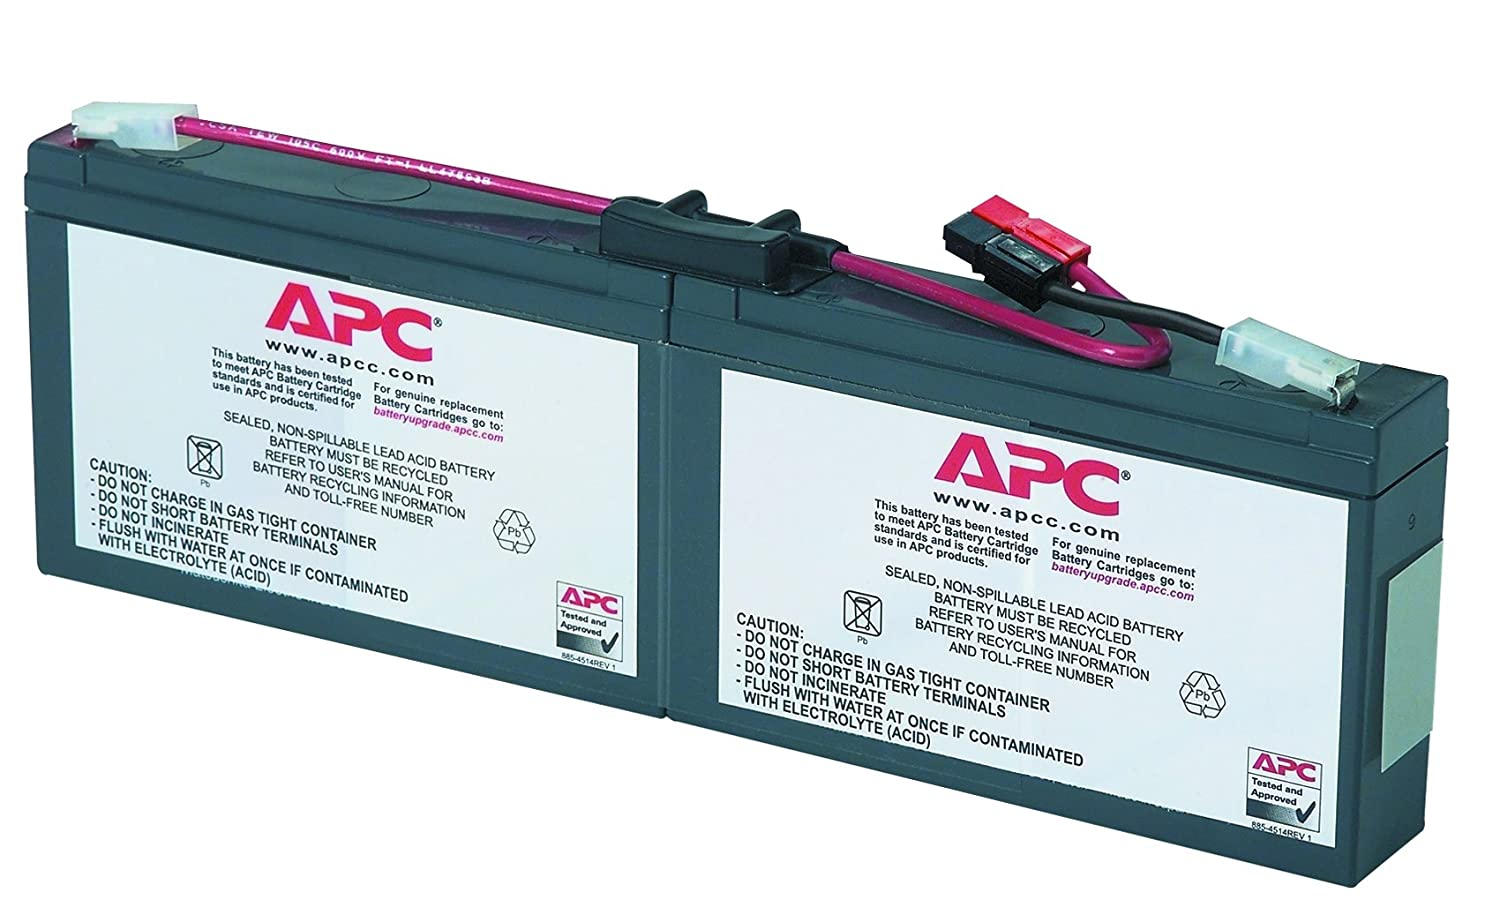 amazon com apc ups battery replacement for apc smart ups models rh amazon com UPS 1500 Battery Apc 1500 Battery Compartment